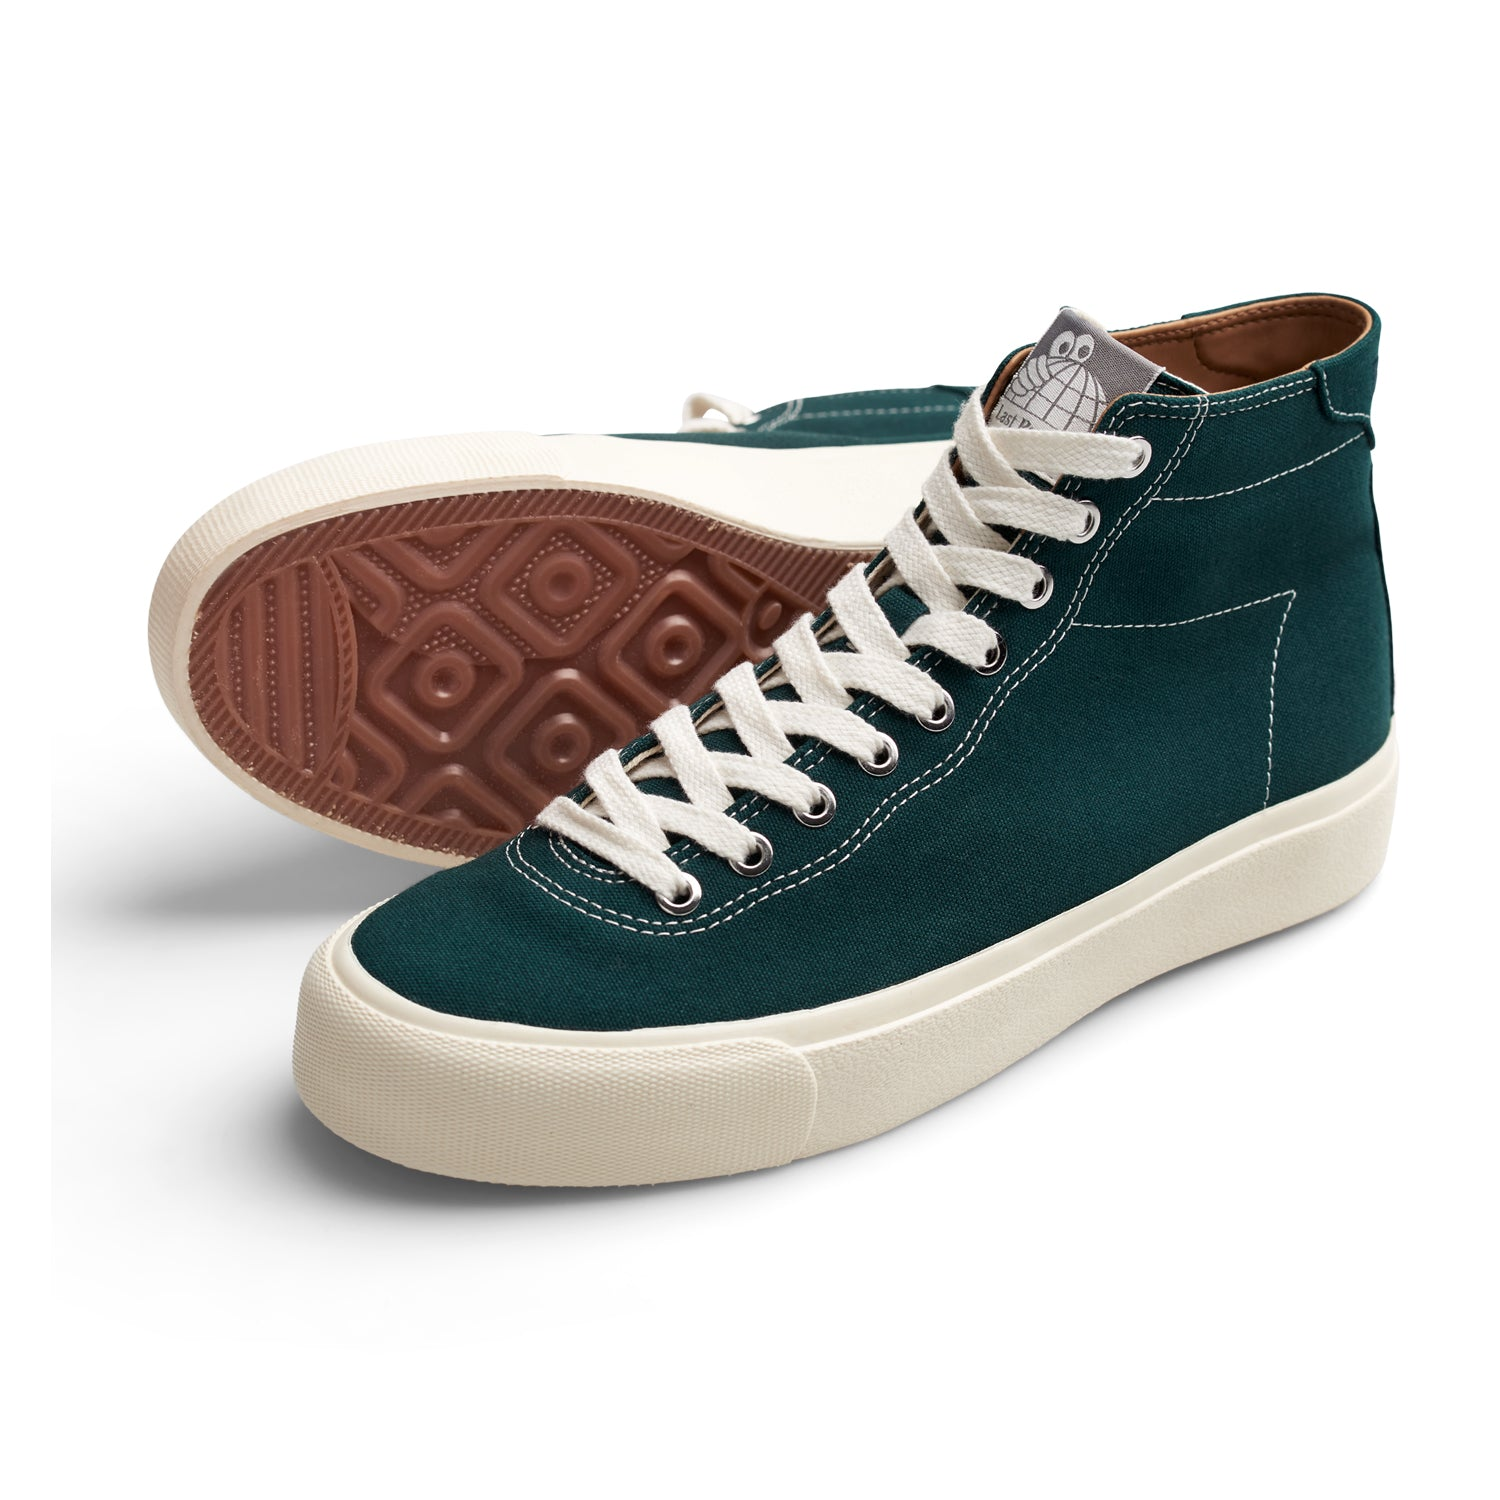 Last Resort AB VM001 Canvas Hi Emerald/White